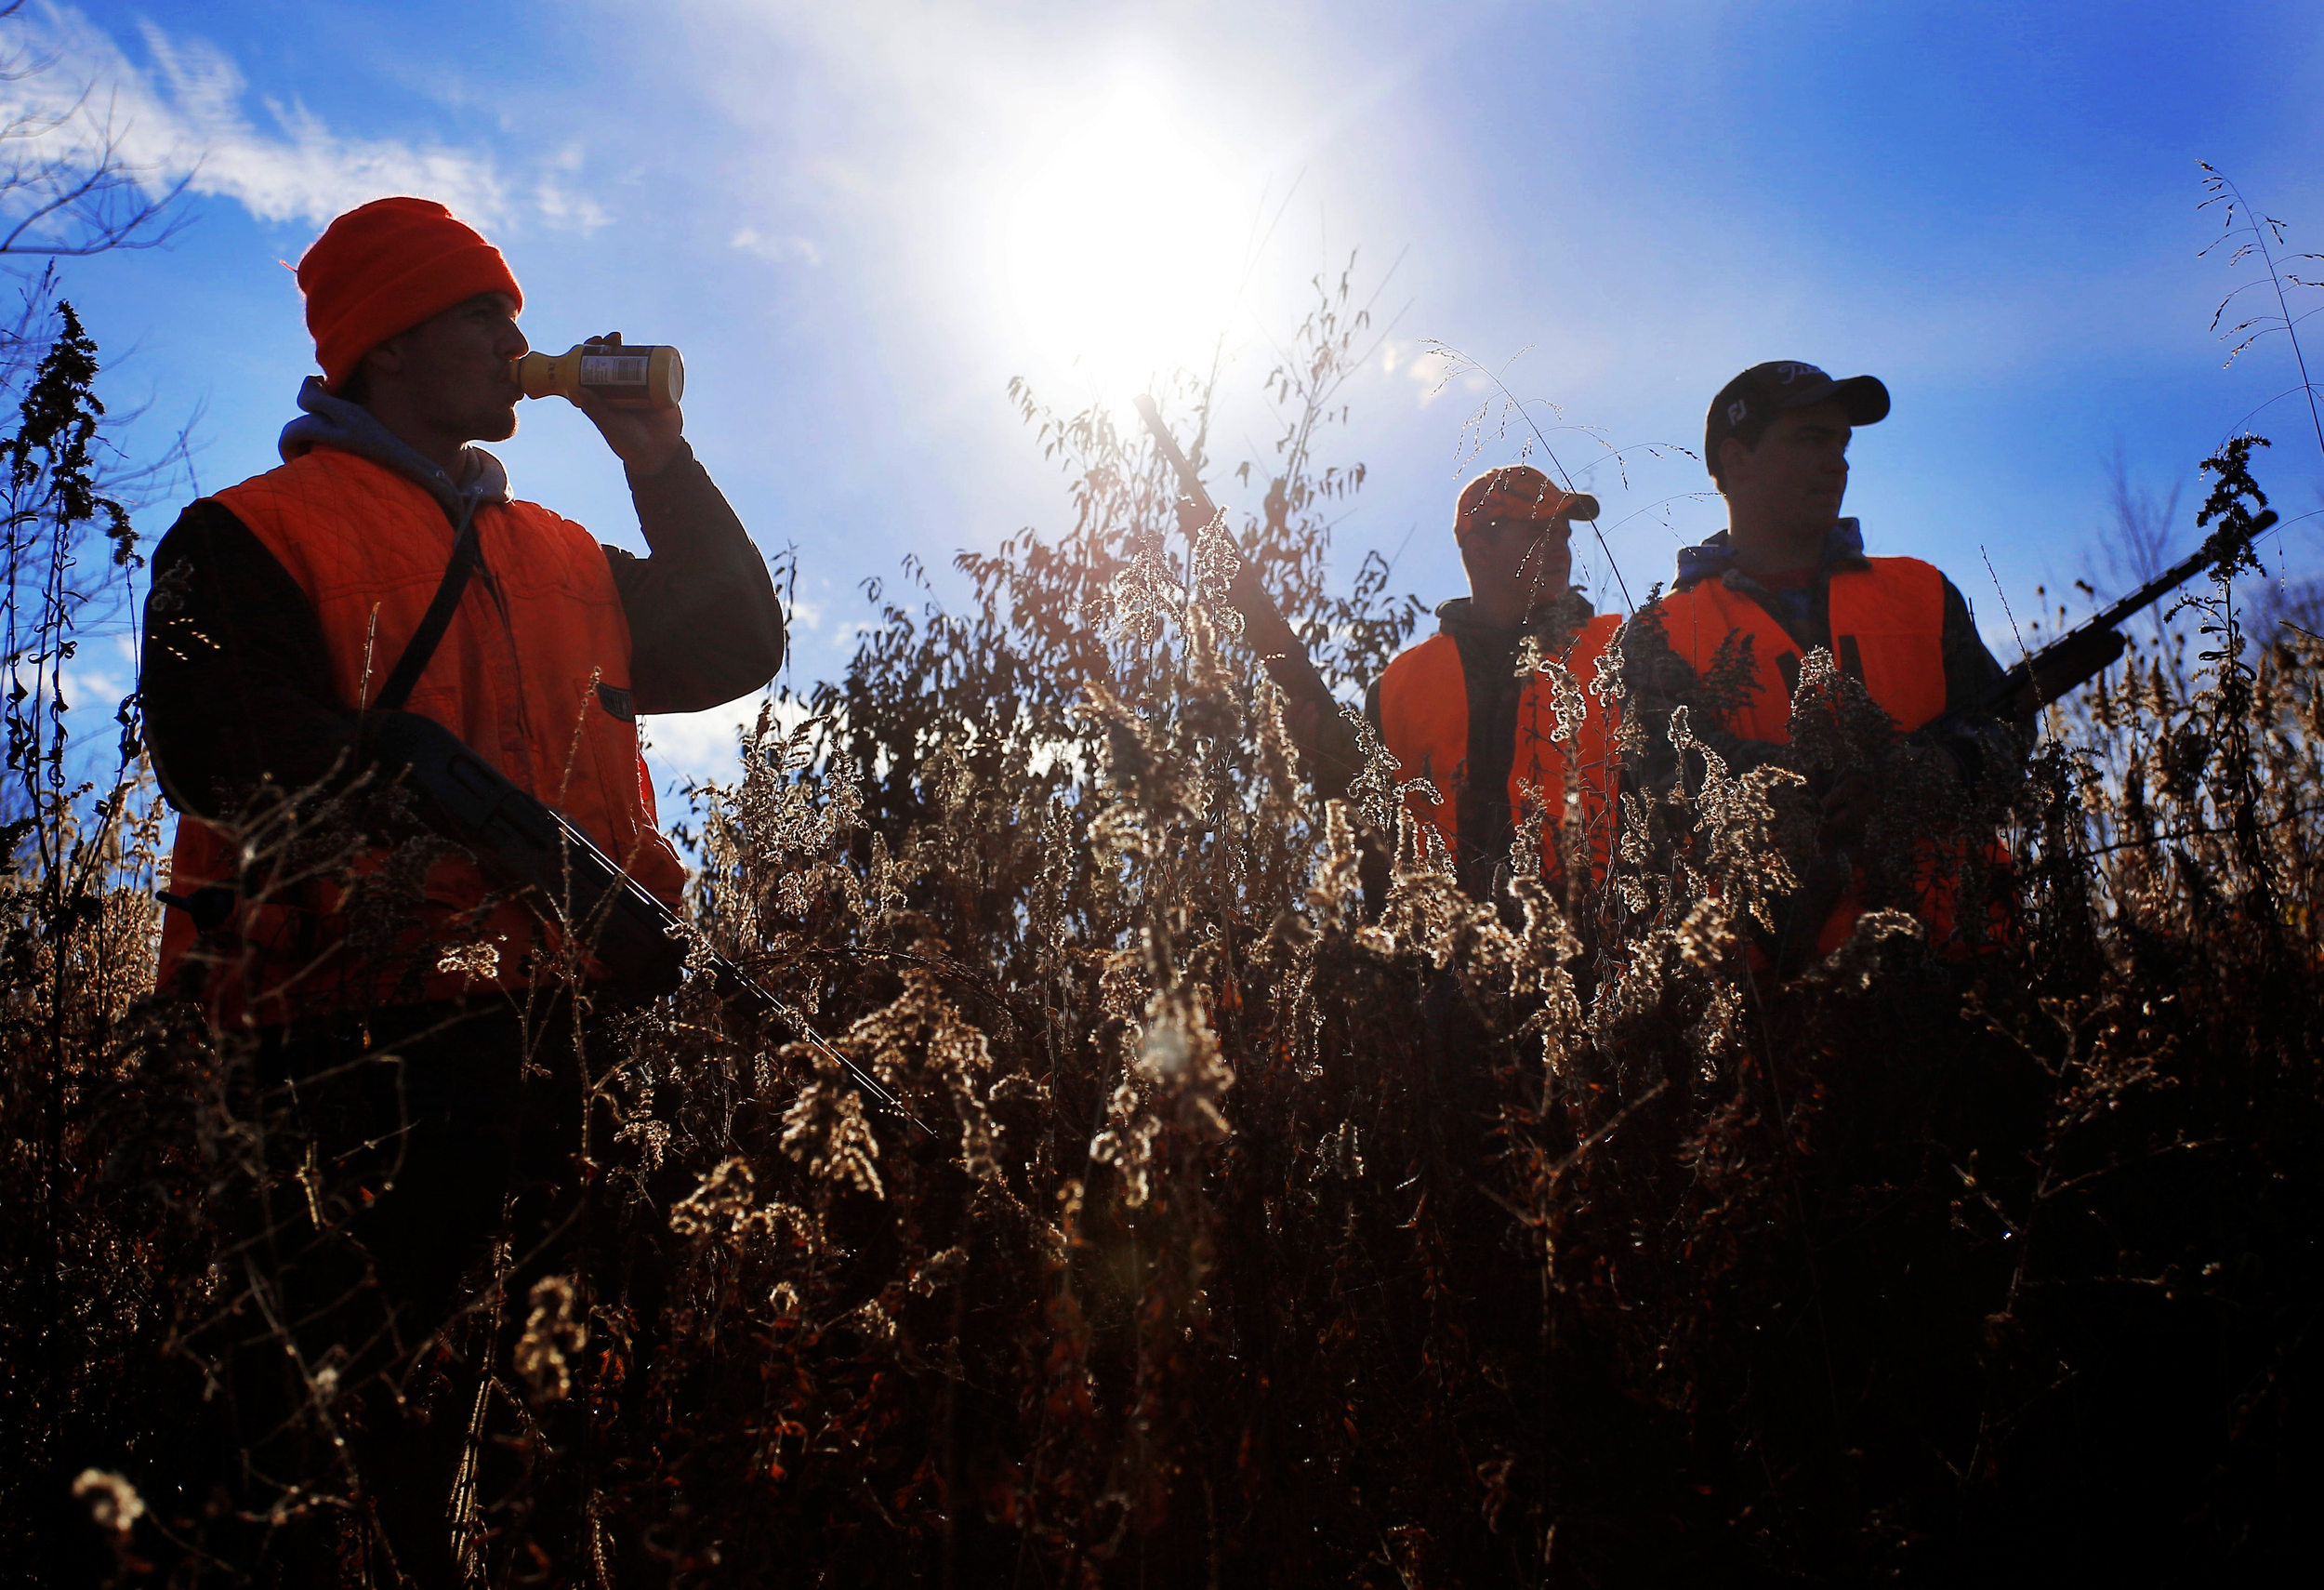 Jacob Koons drinks some milk while taking a break with Bryce Smathers, center and Reed Morgan while rabbit hunting in a field outside of Millfield, Ohio, on November 11, 2014.